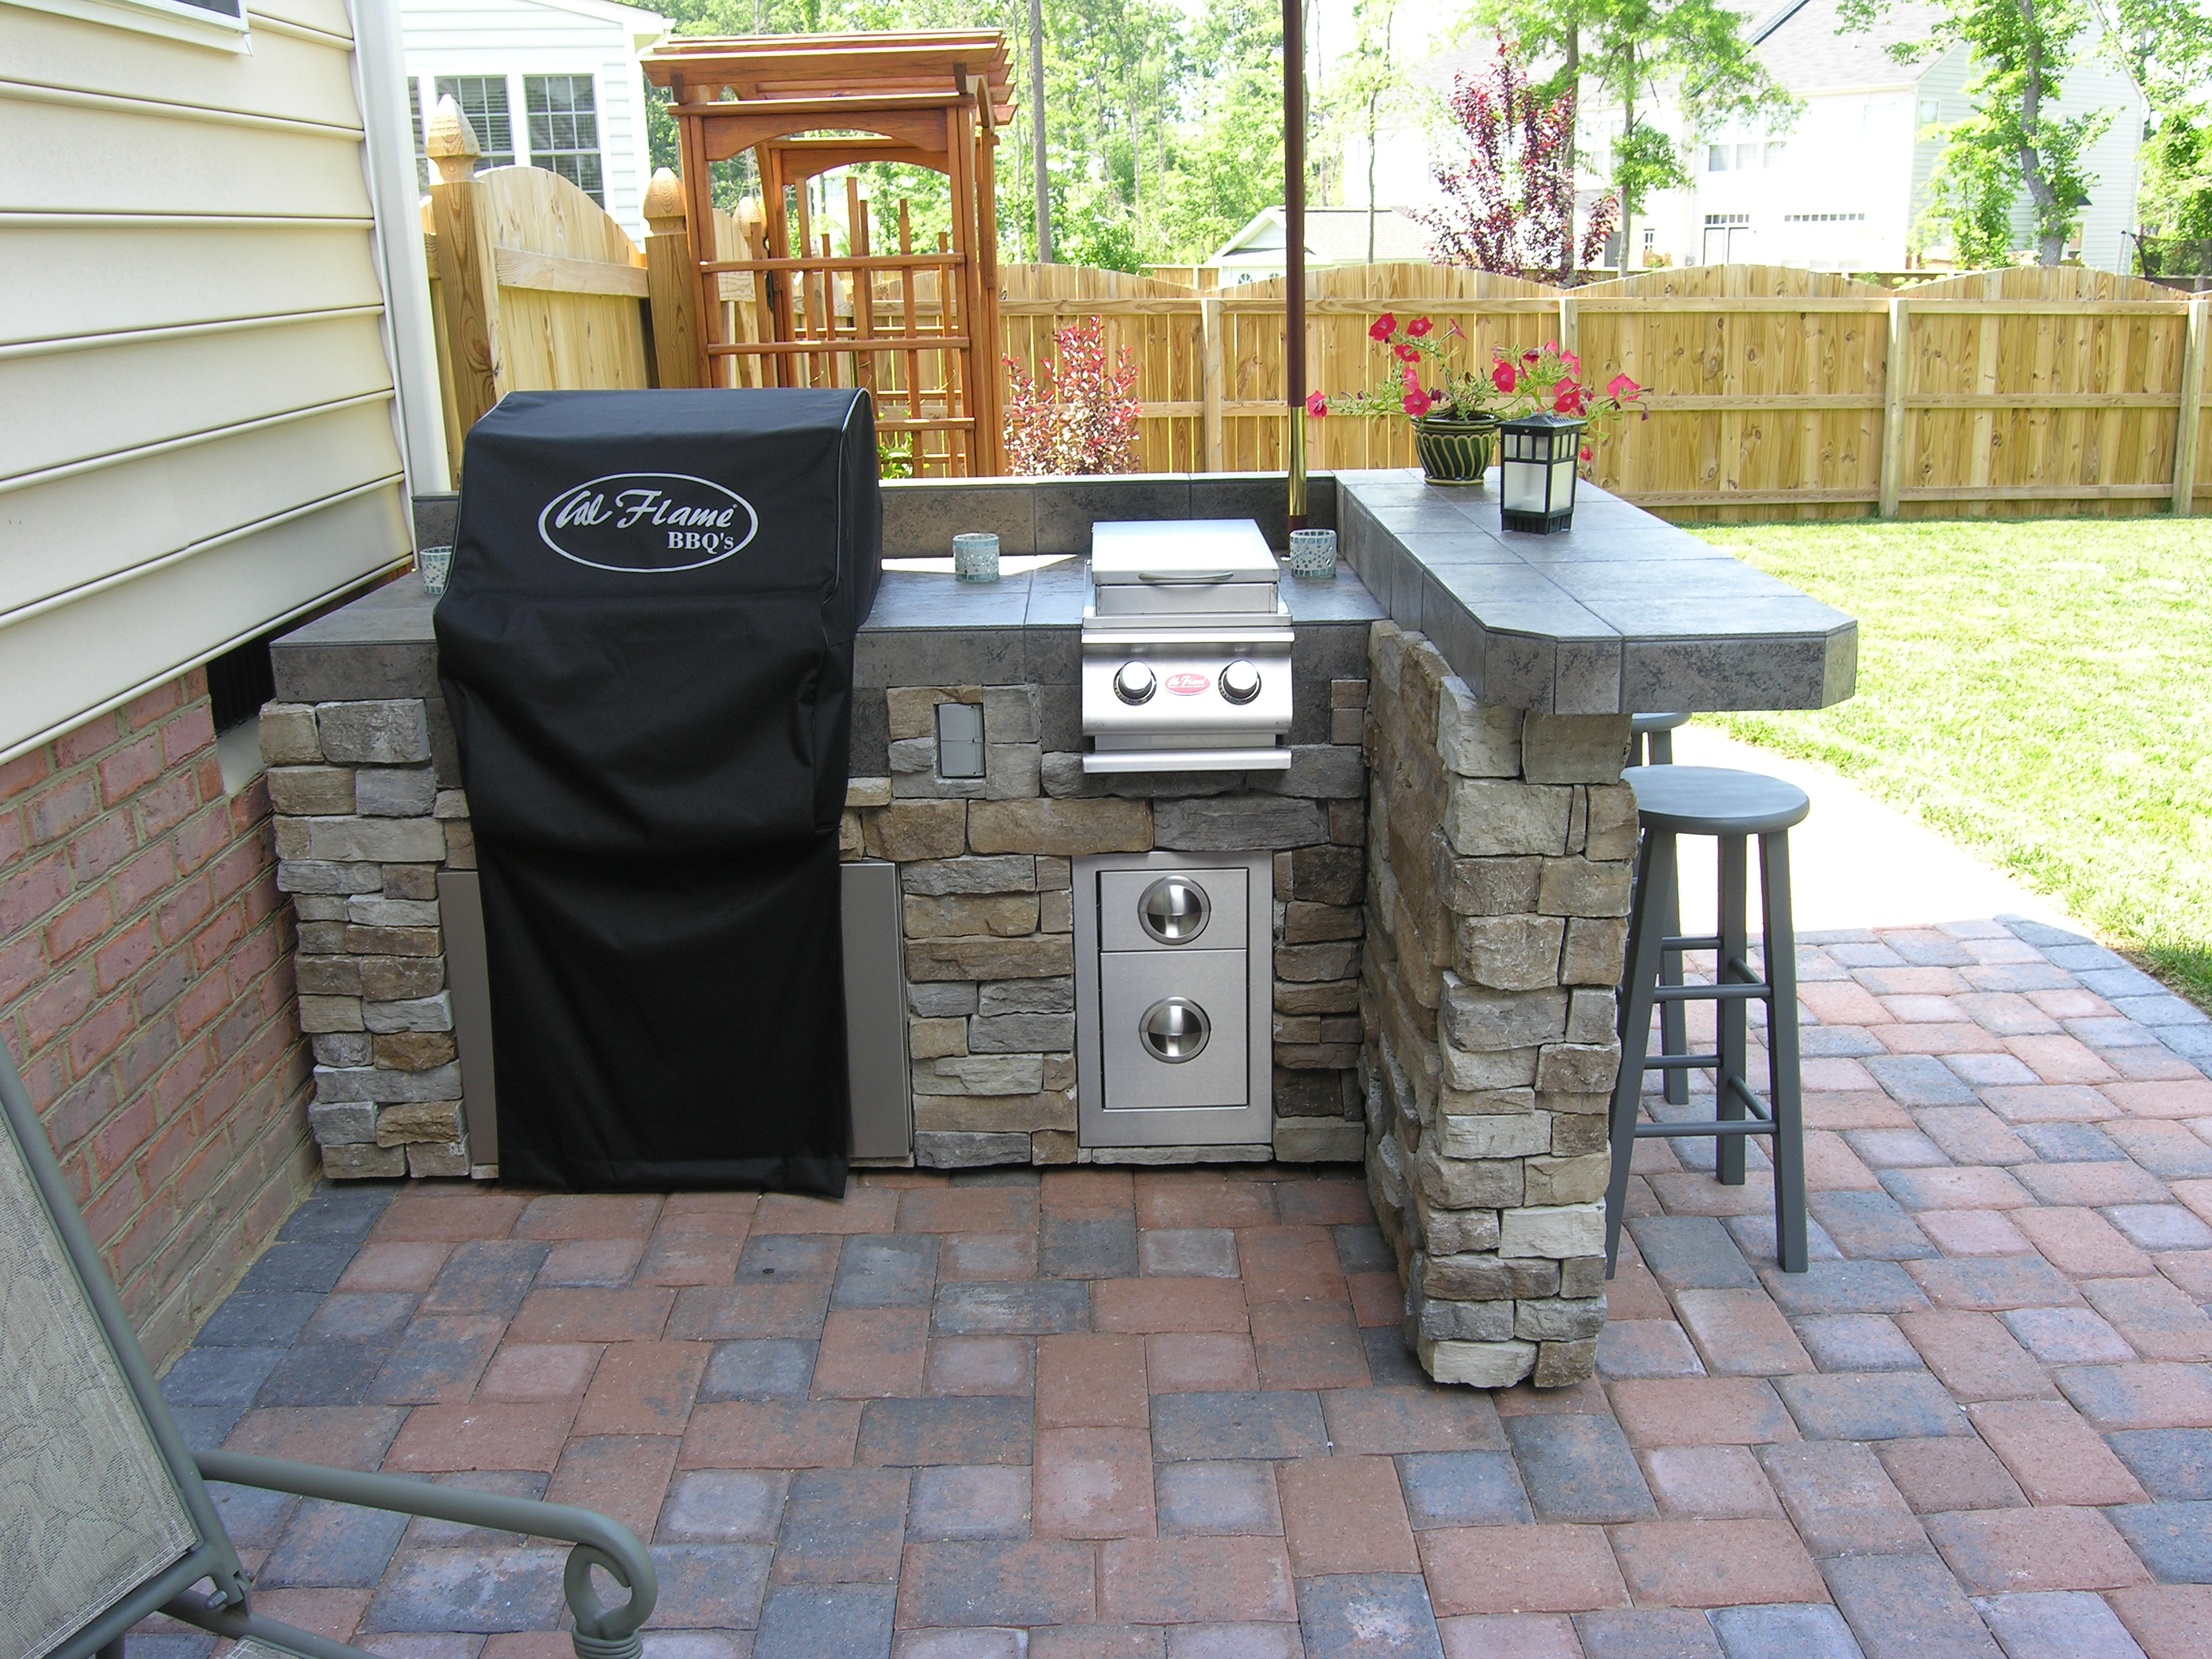 Outdoor Grill Design Ideas built in grill design pictures remodel decor and ideas 25 Best Ideas About Built In Bbq On Pinterest Built In Bbq Grill Built In Grill And Outdoor Grill Area